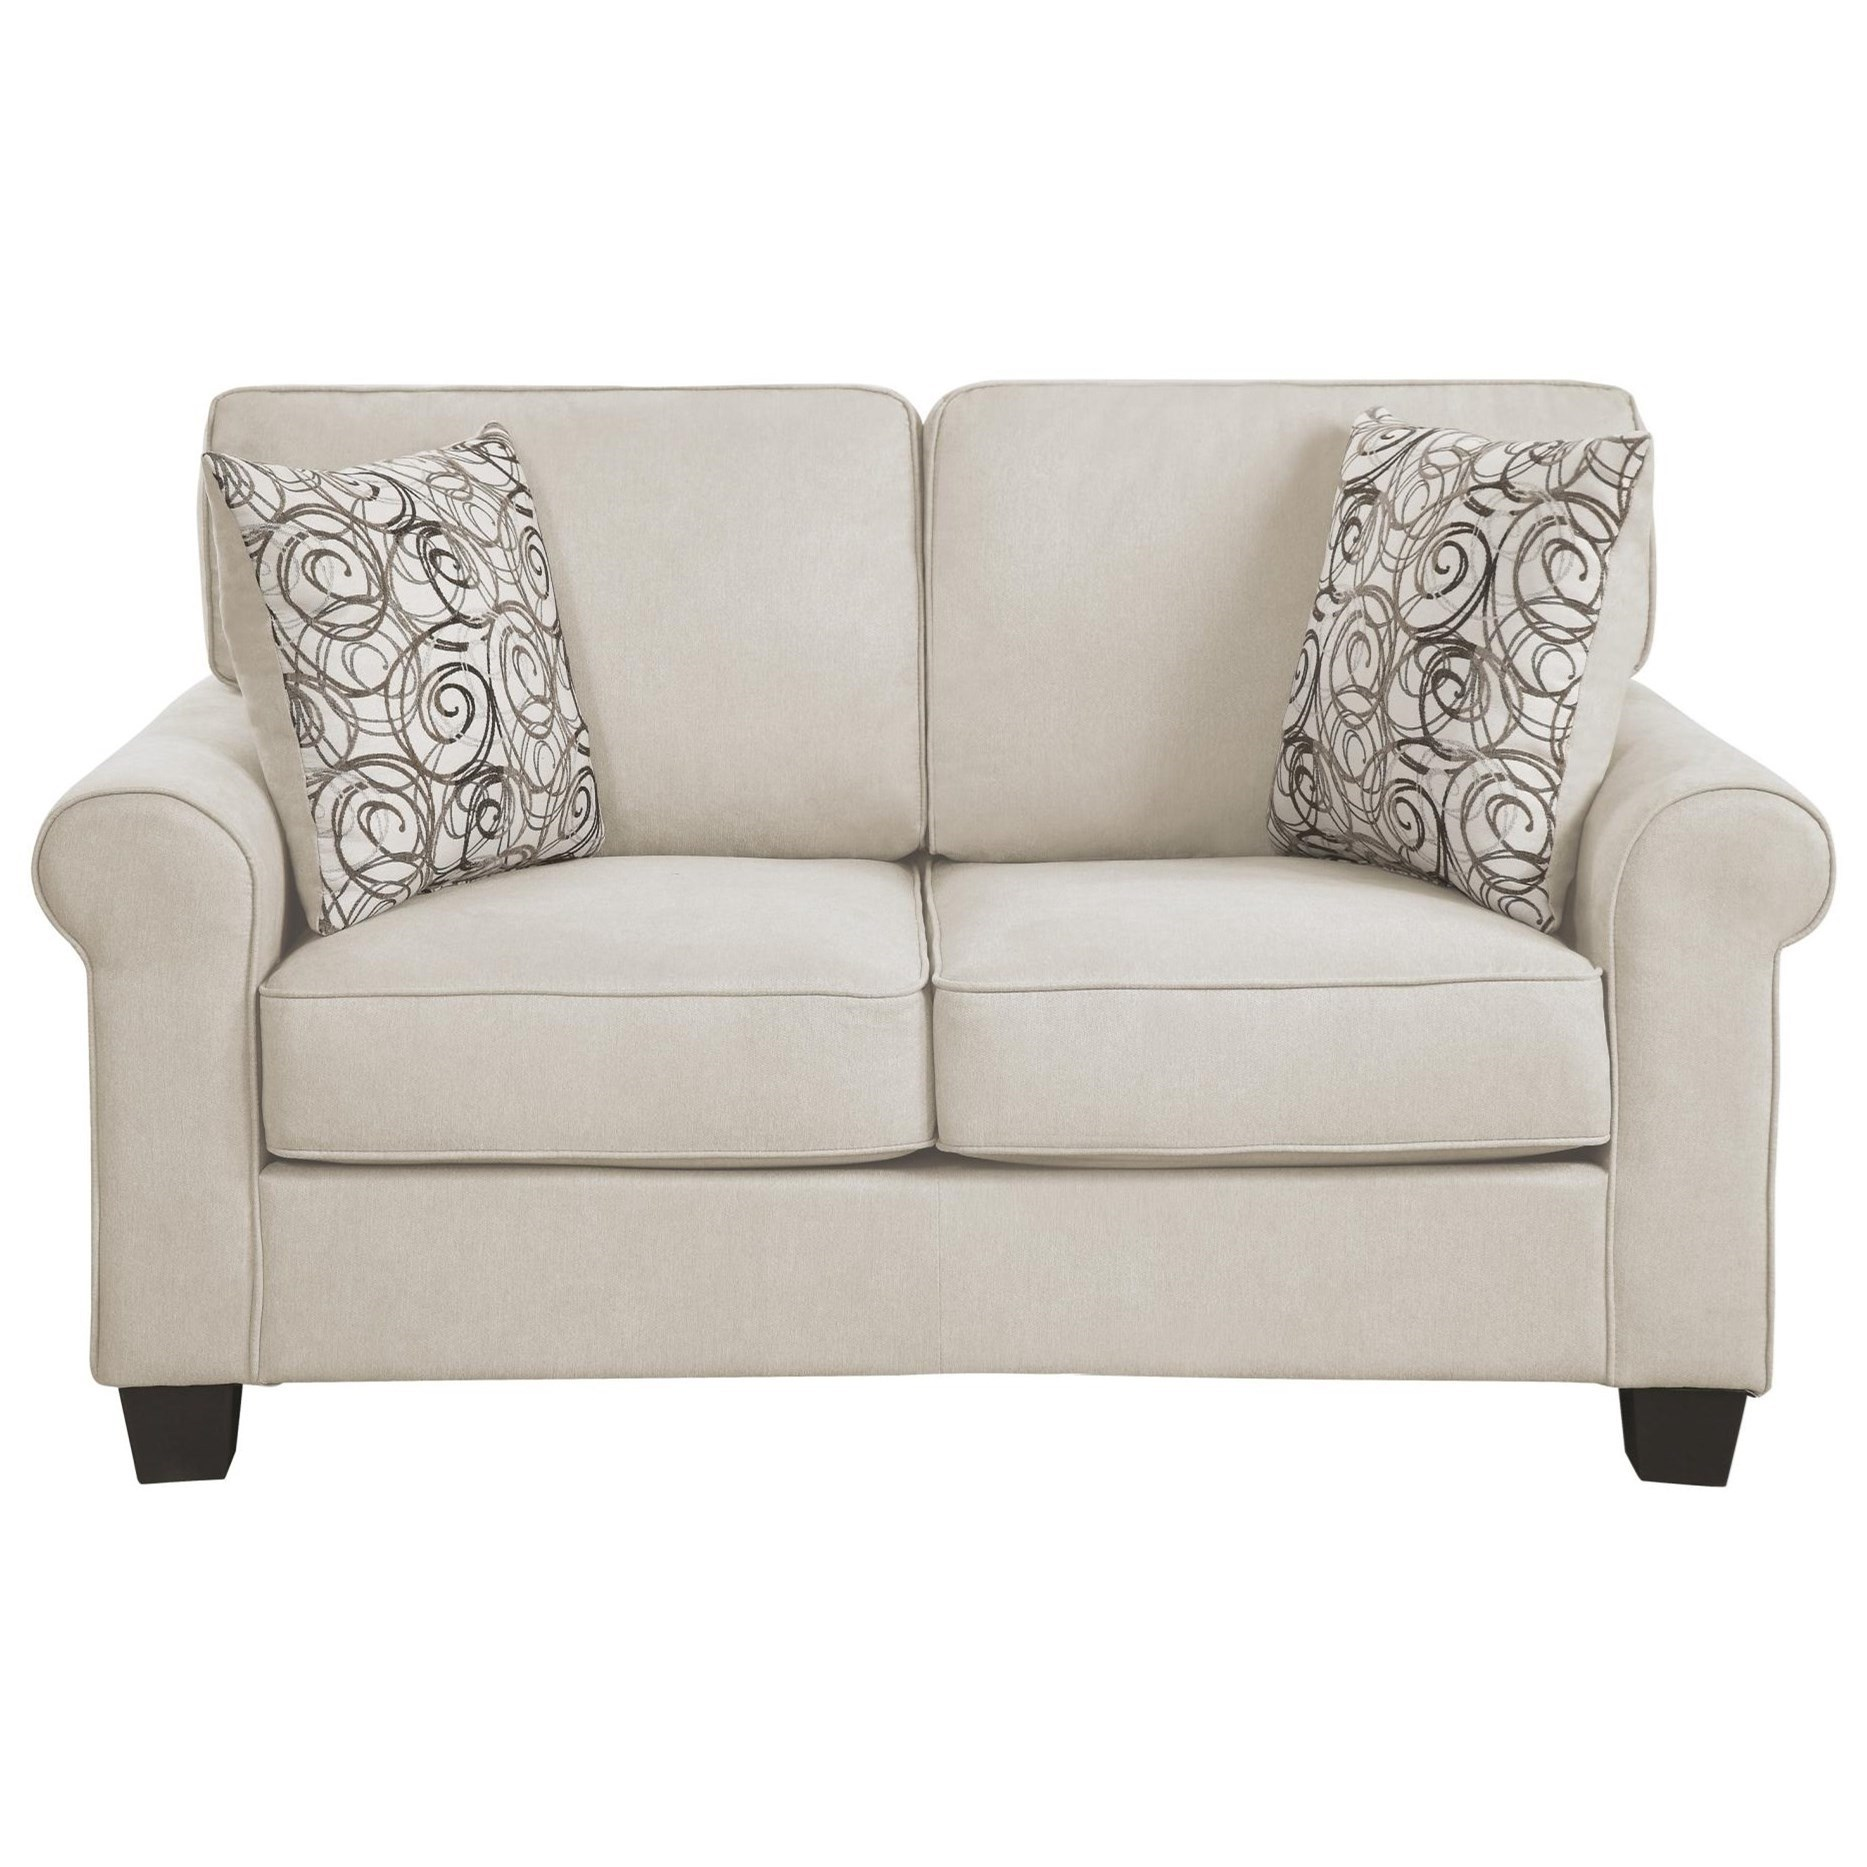 Selkirk Love Seat by Homelegance at Nassau Furniture and Mattress